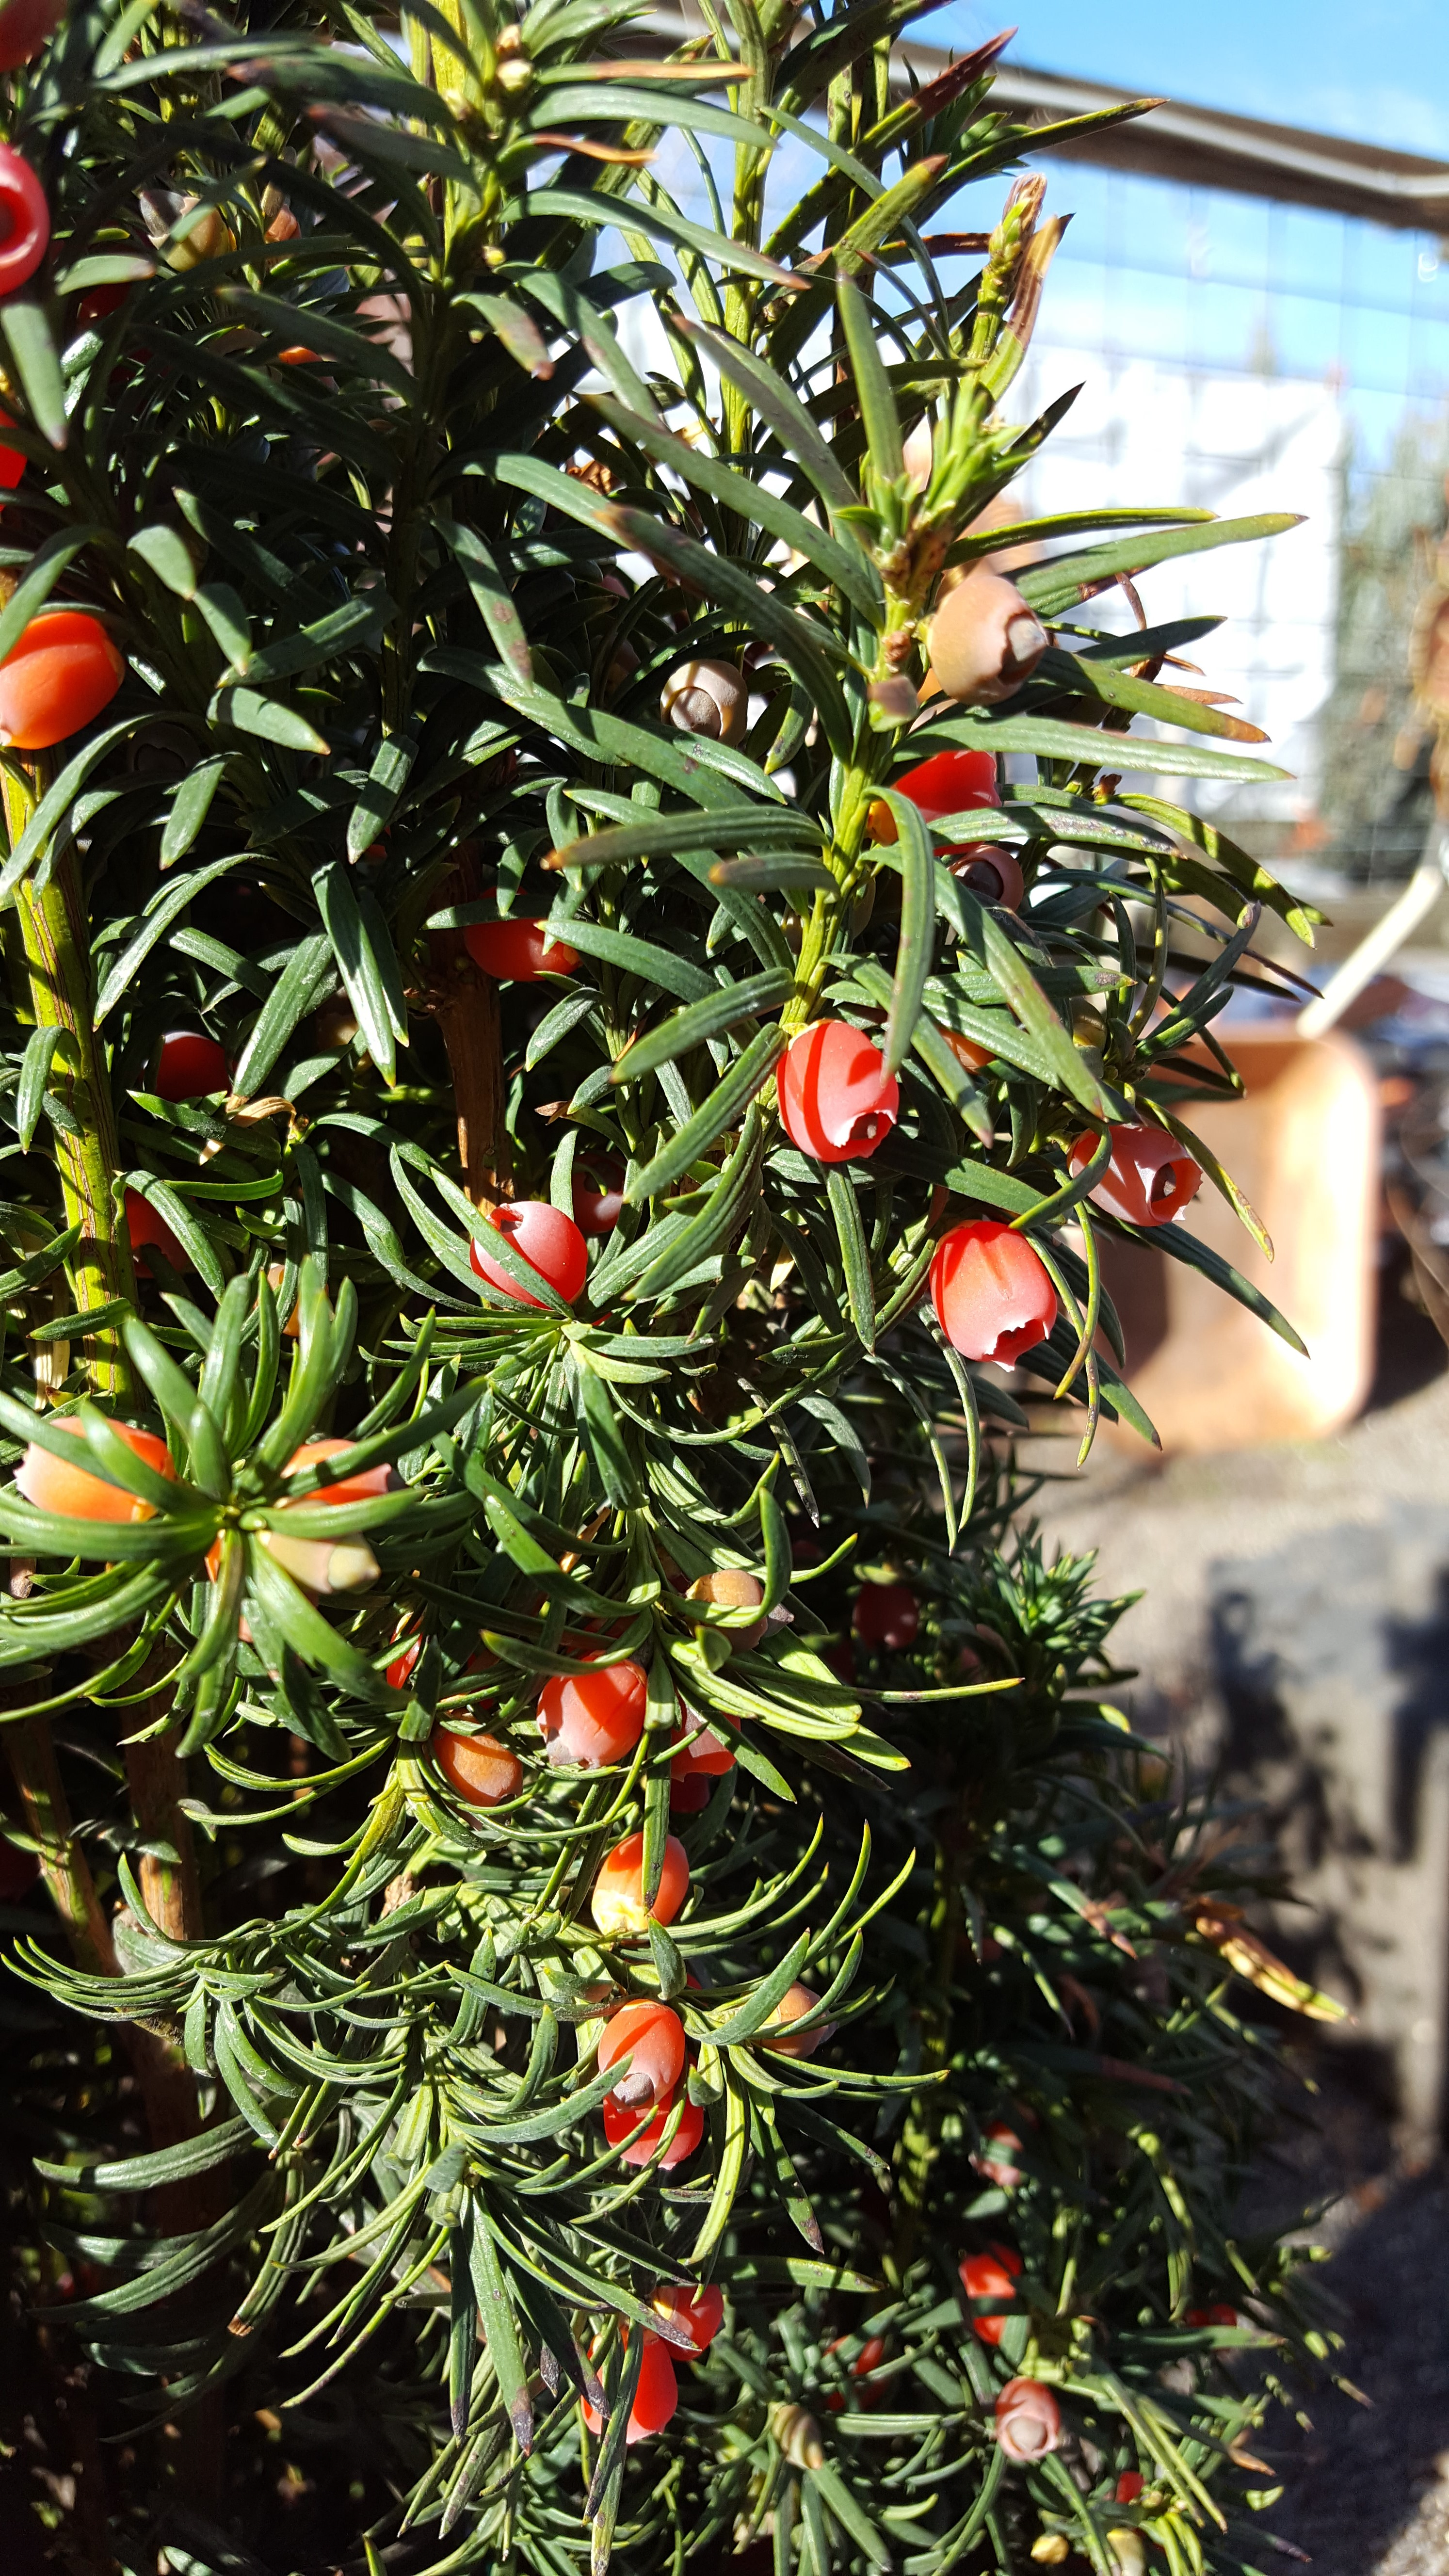 evergreen plant with red berries